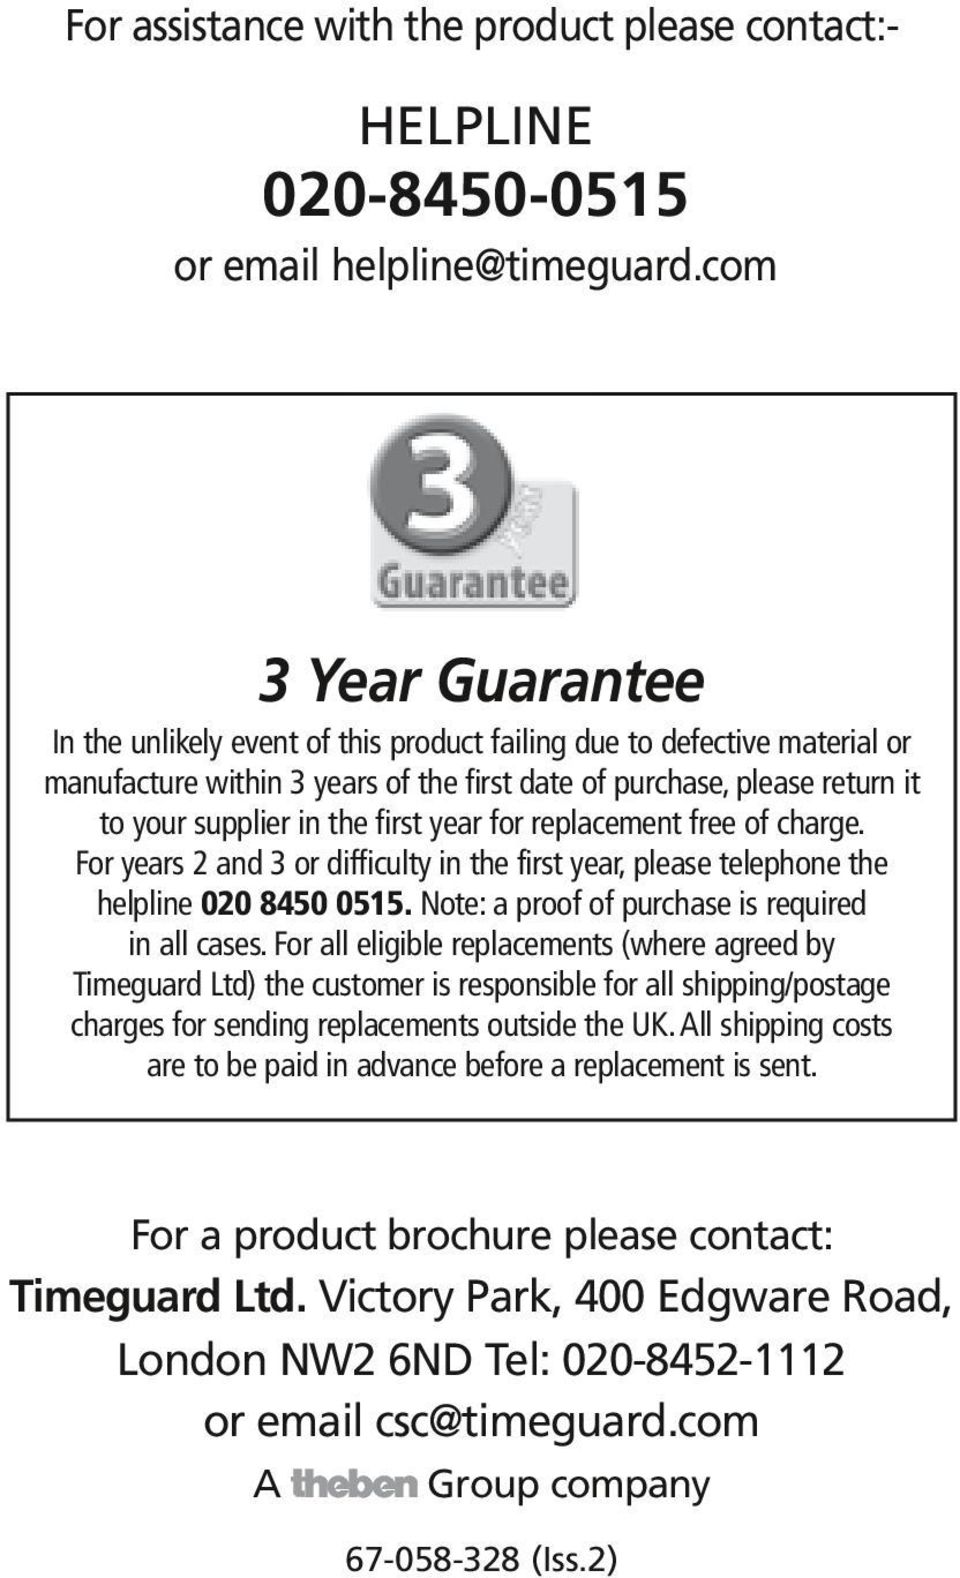 first year for replacement free of charge. For years 2 and 3 or difficulty in the first year, please telephone the helpline 020 8450 0515. Note: a proof of purchase is required in all cases.